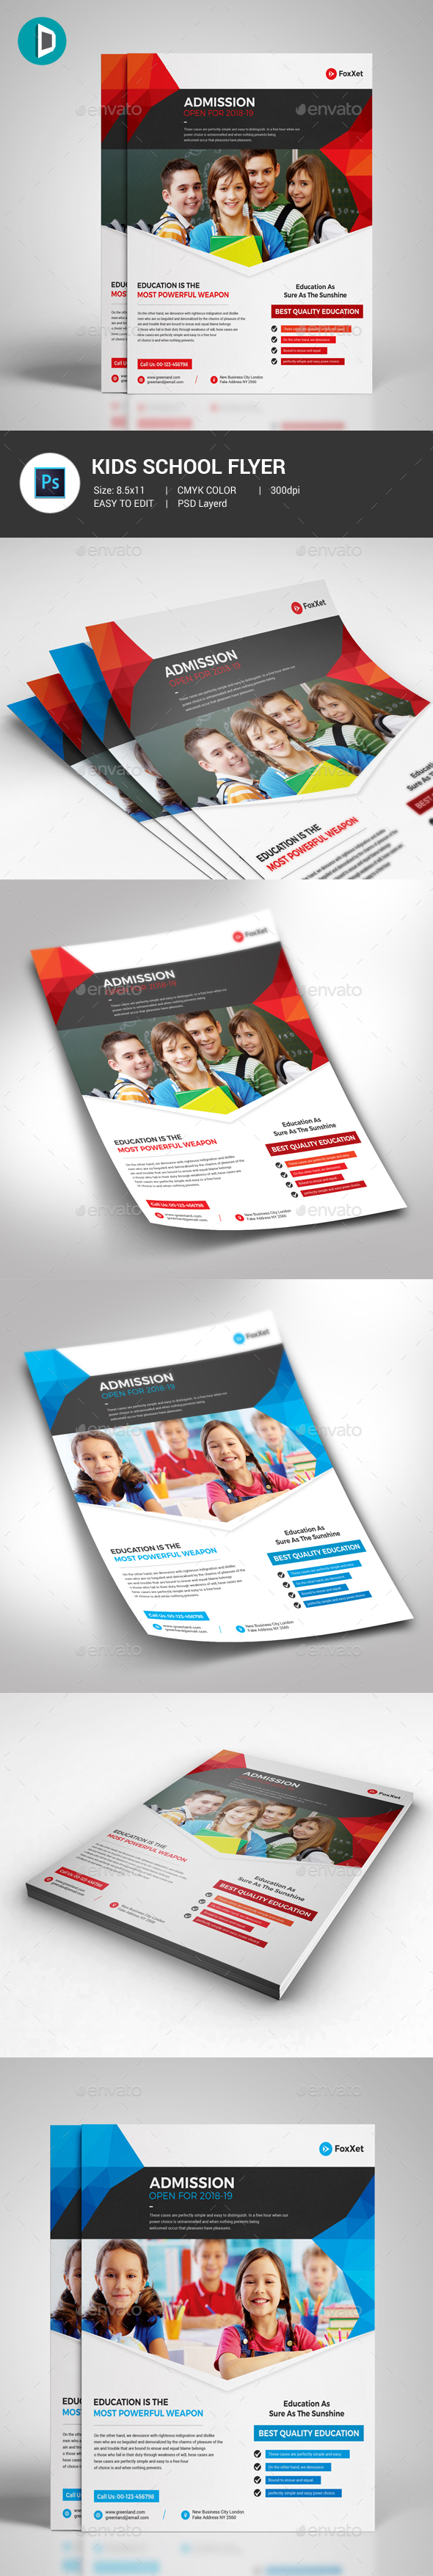 Kids School Flyer Template - Corporate Flyers